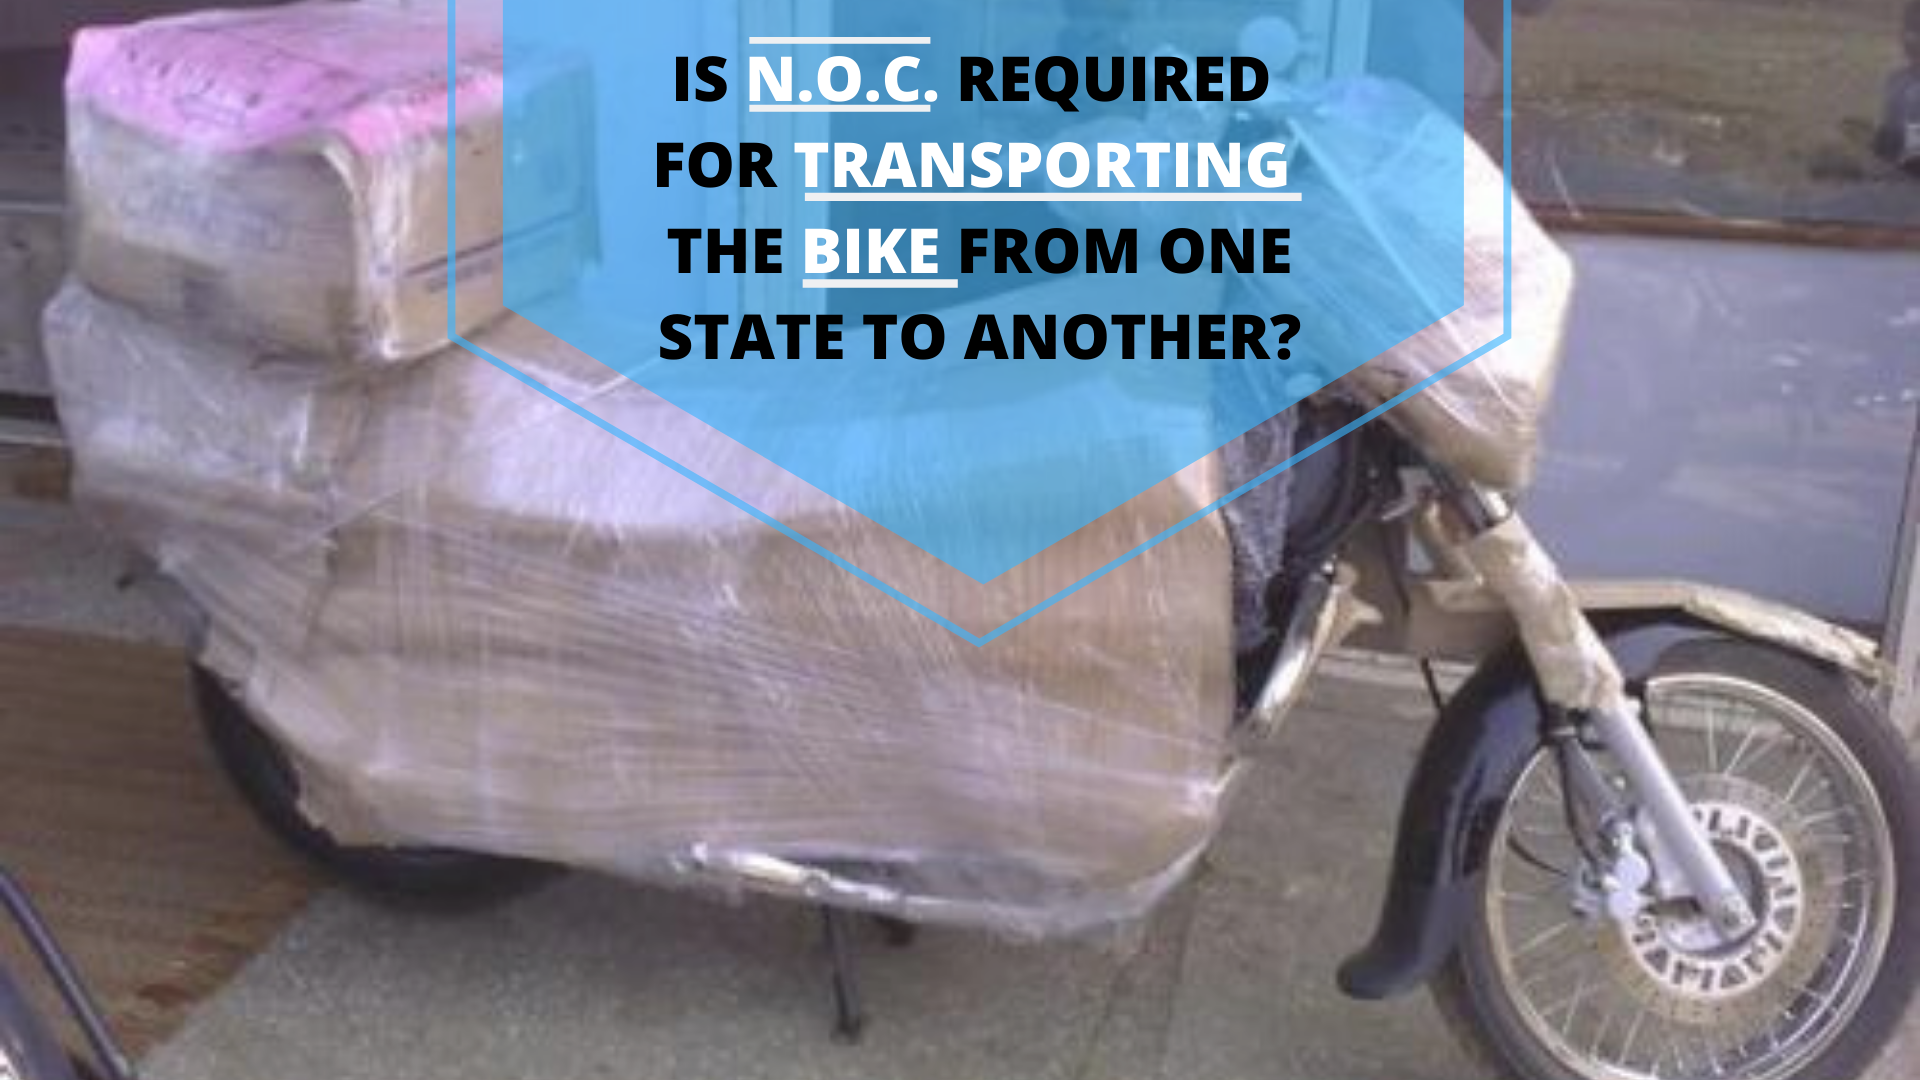 Is N.O.C. Required for Transporting the Bike from one State to Another?